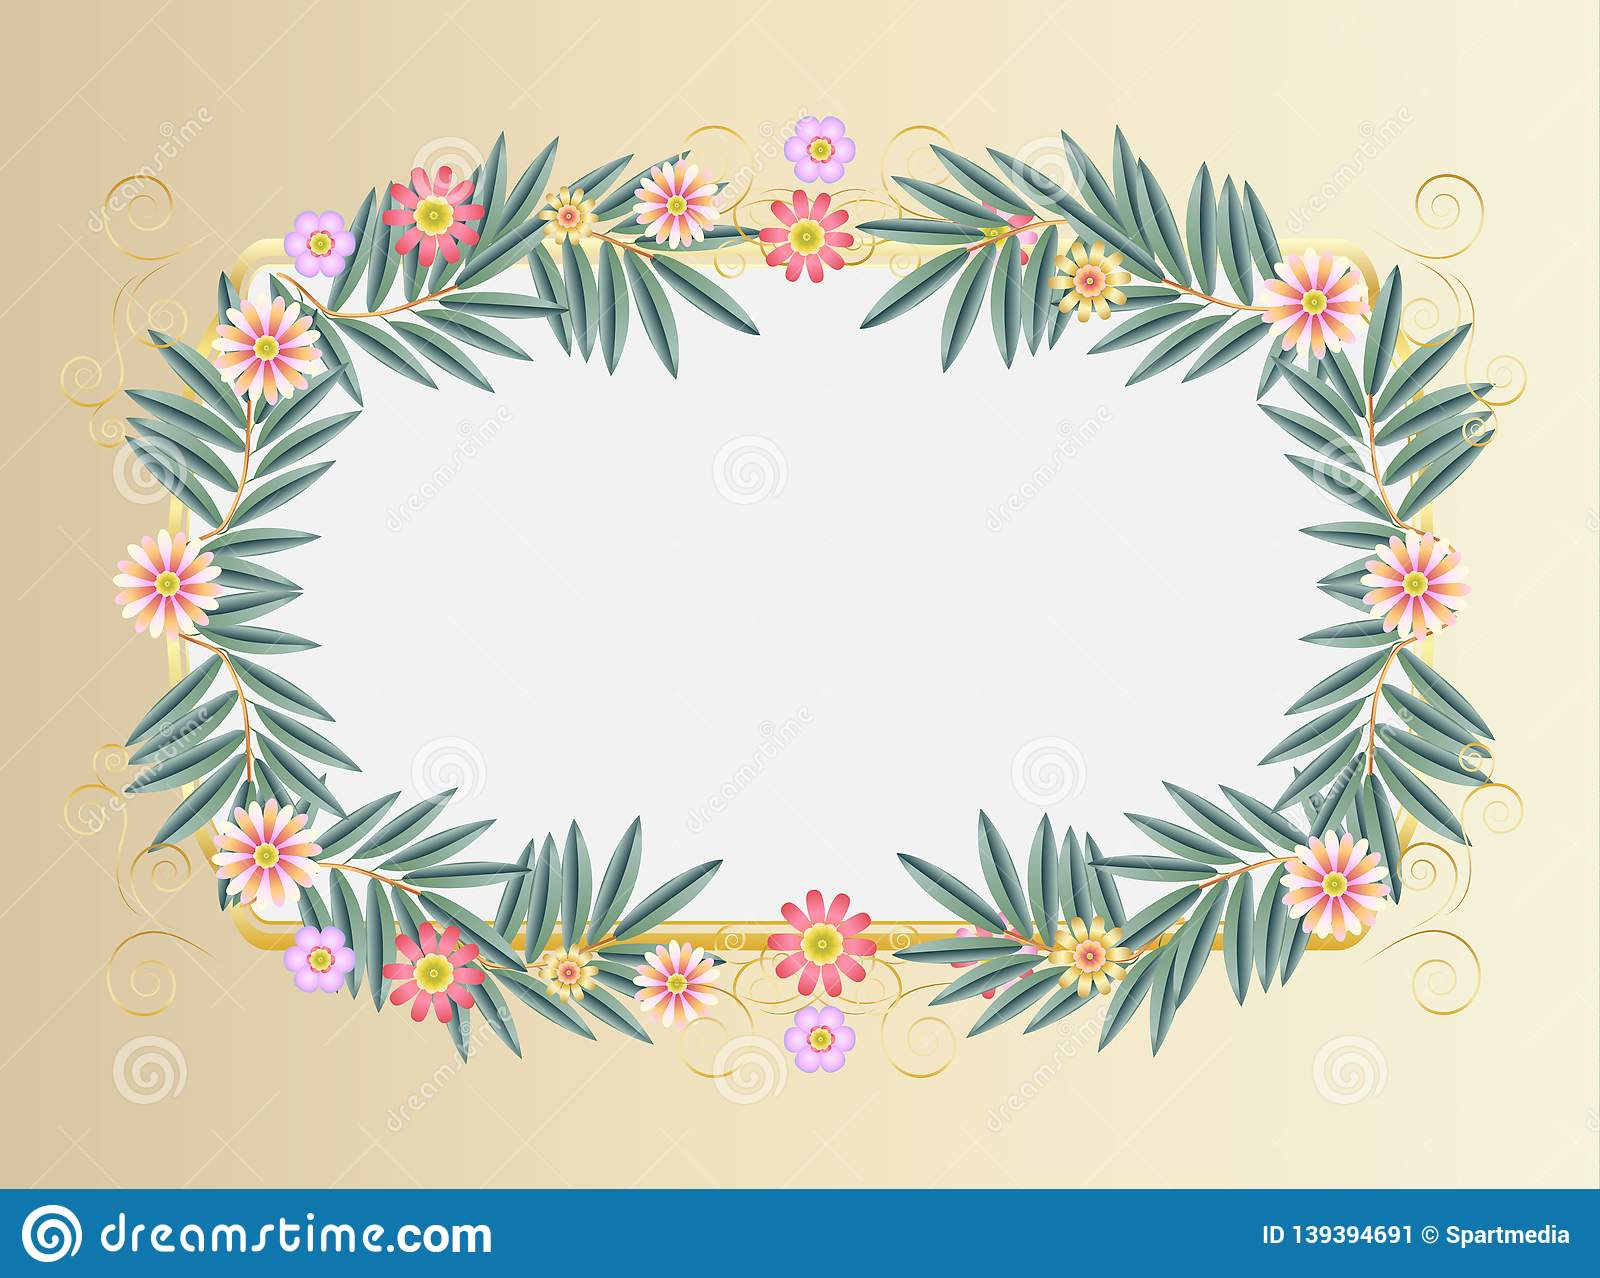 Vintage Decorative Floral Frame For Jewish Holiday Passover